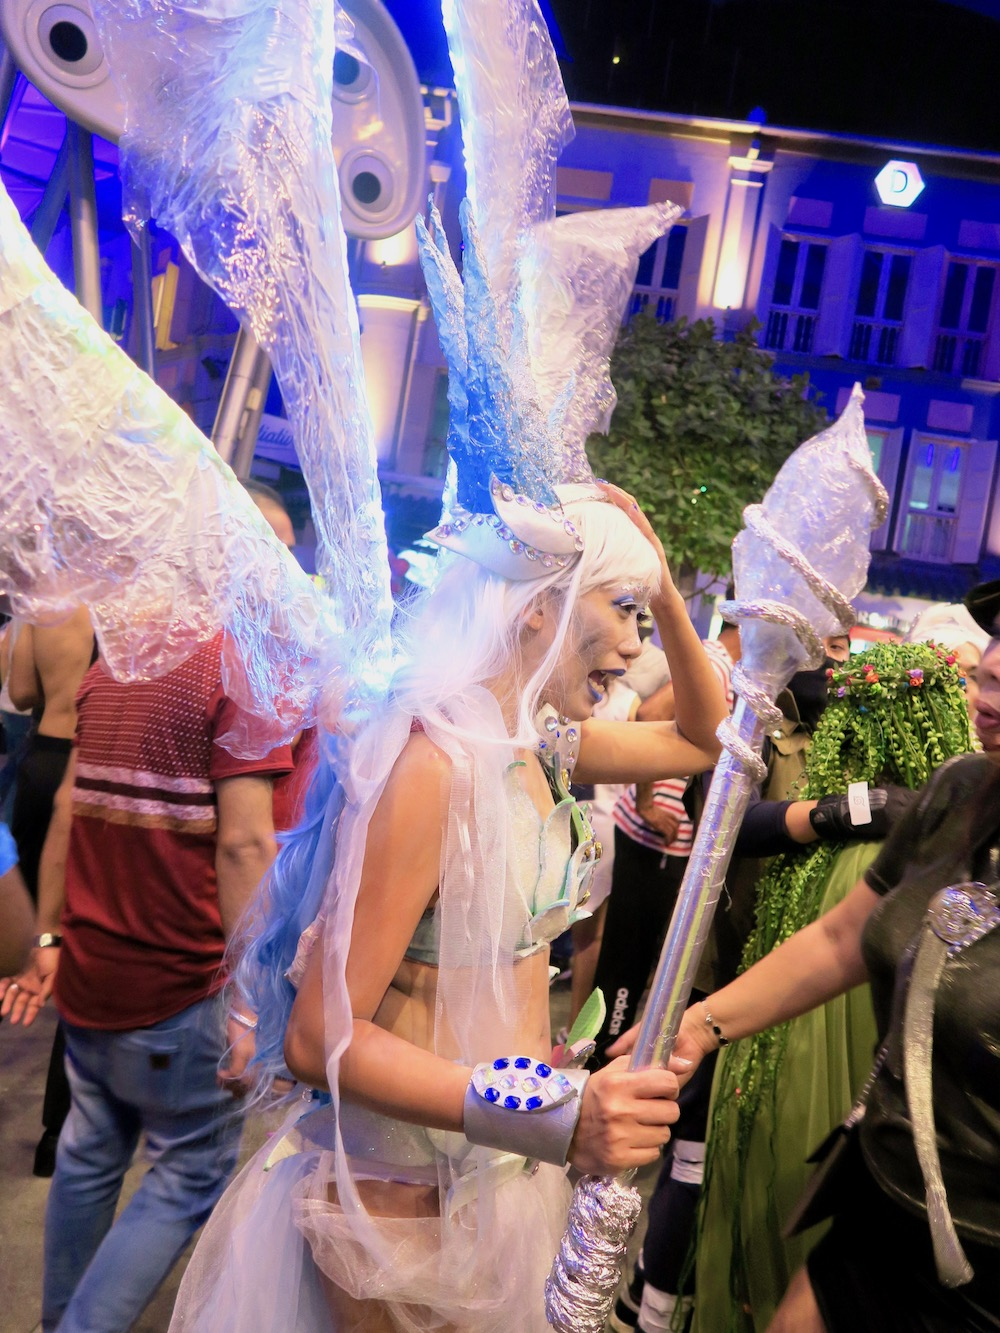 Fairy elf Halloween costume at Clarke Quay |curlytraveller.com